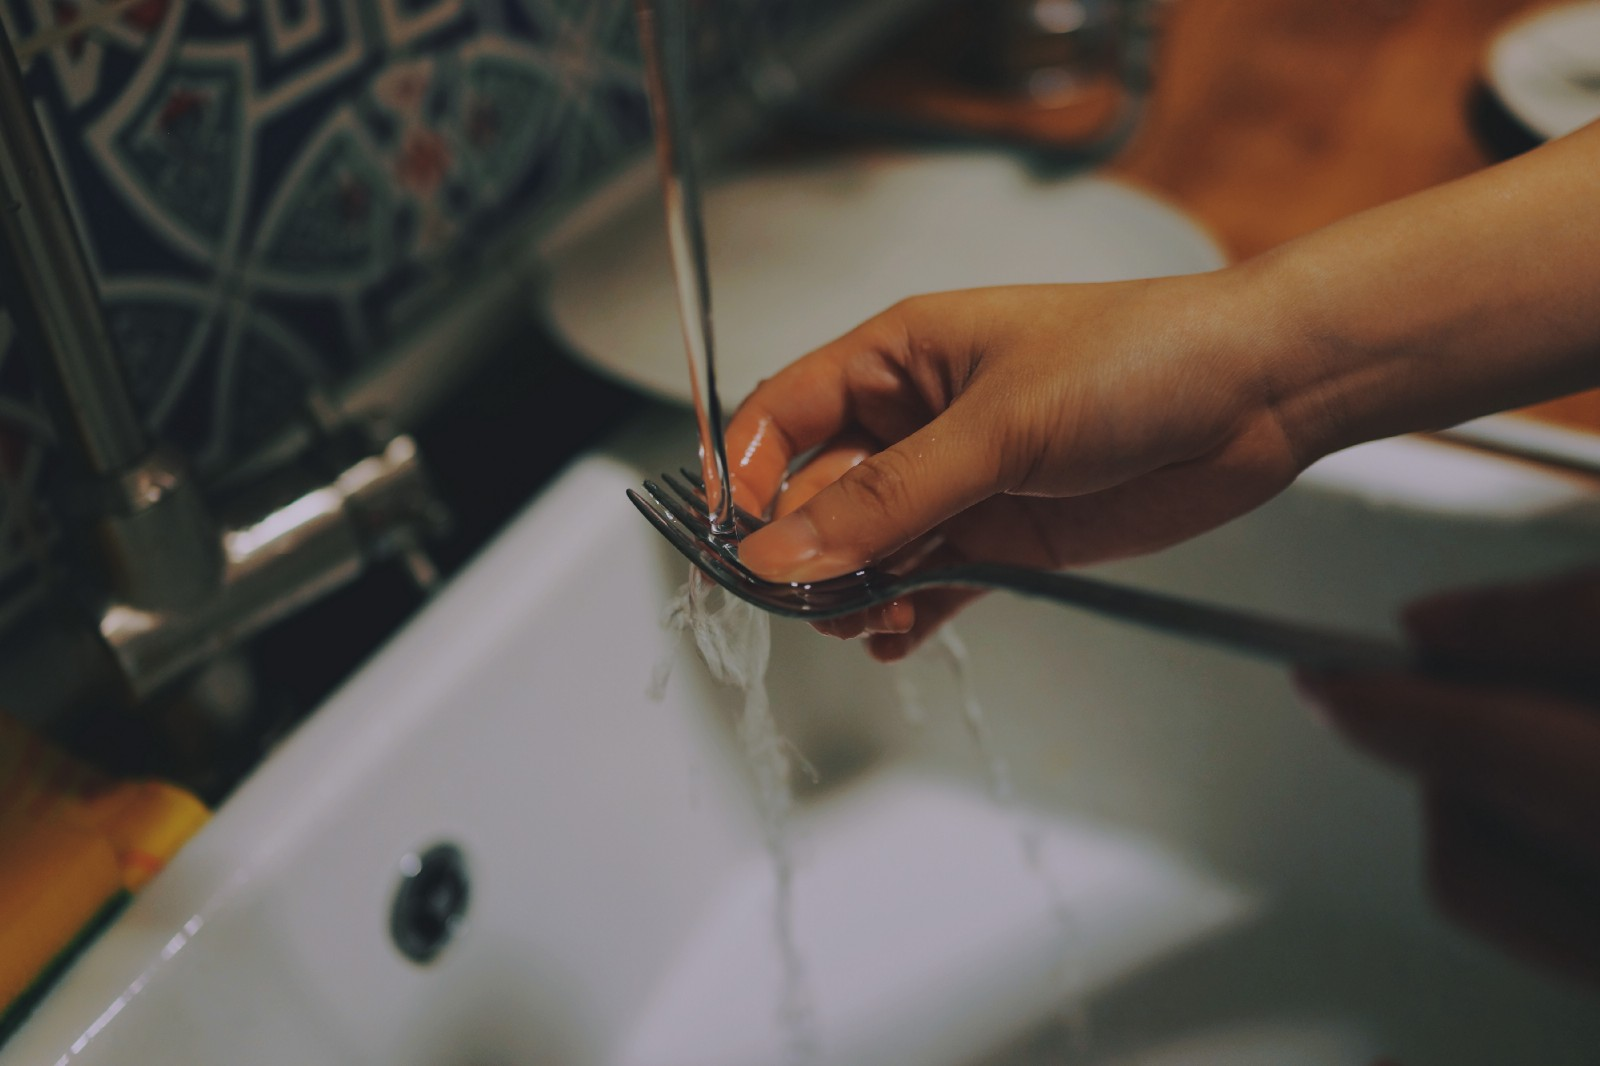 60d893cee3db6 Most of us don't really enjoy our chores. Some might say they actually hate  it. Chores are work we must carry out but feel like a waste of our time —  or ...